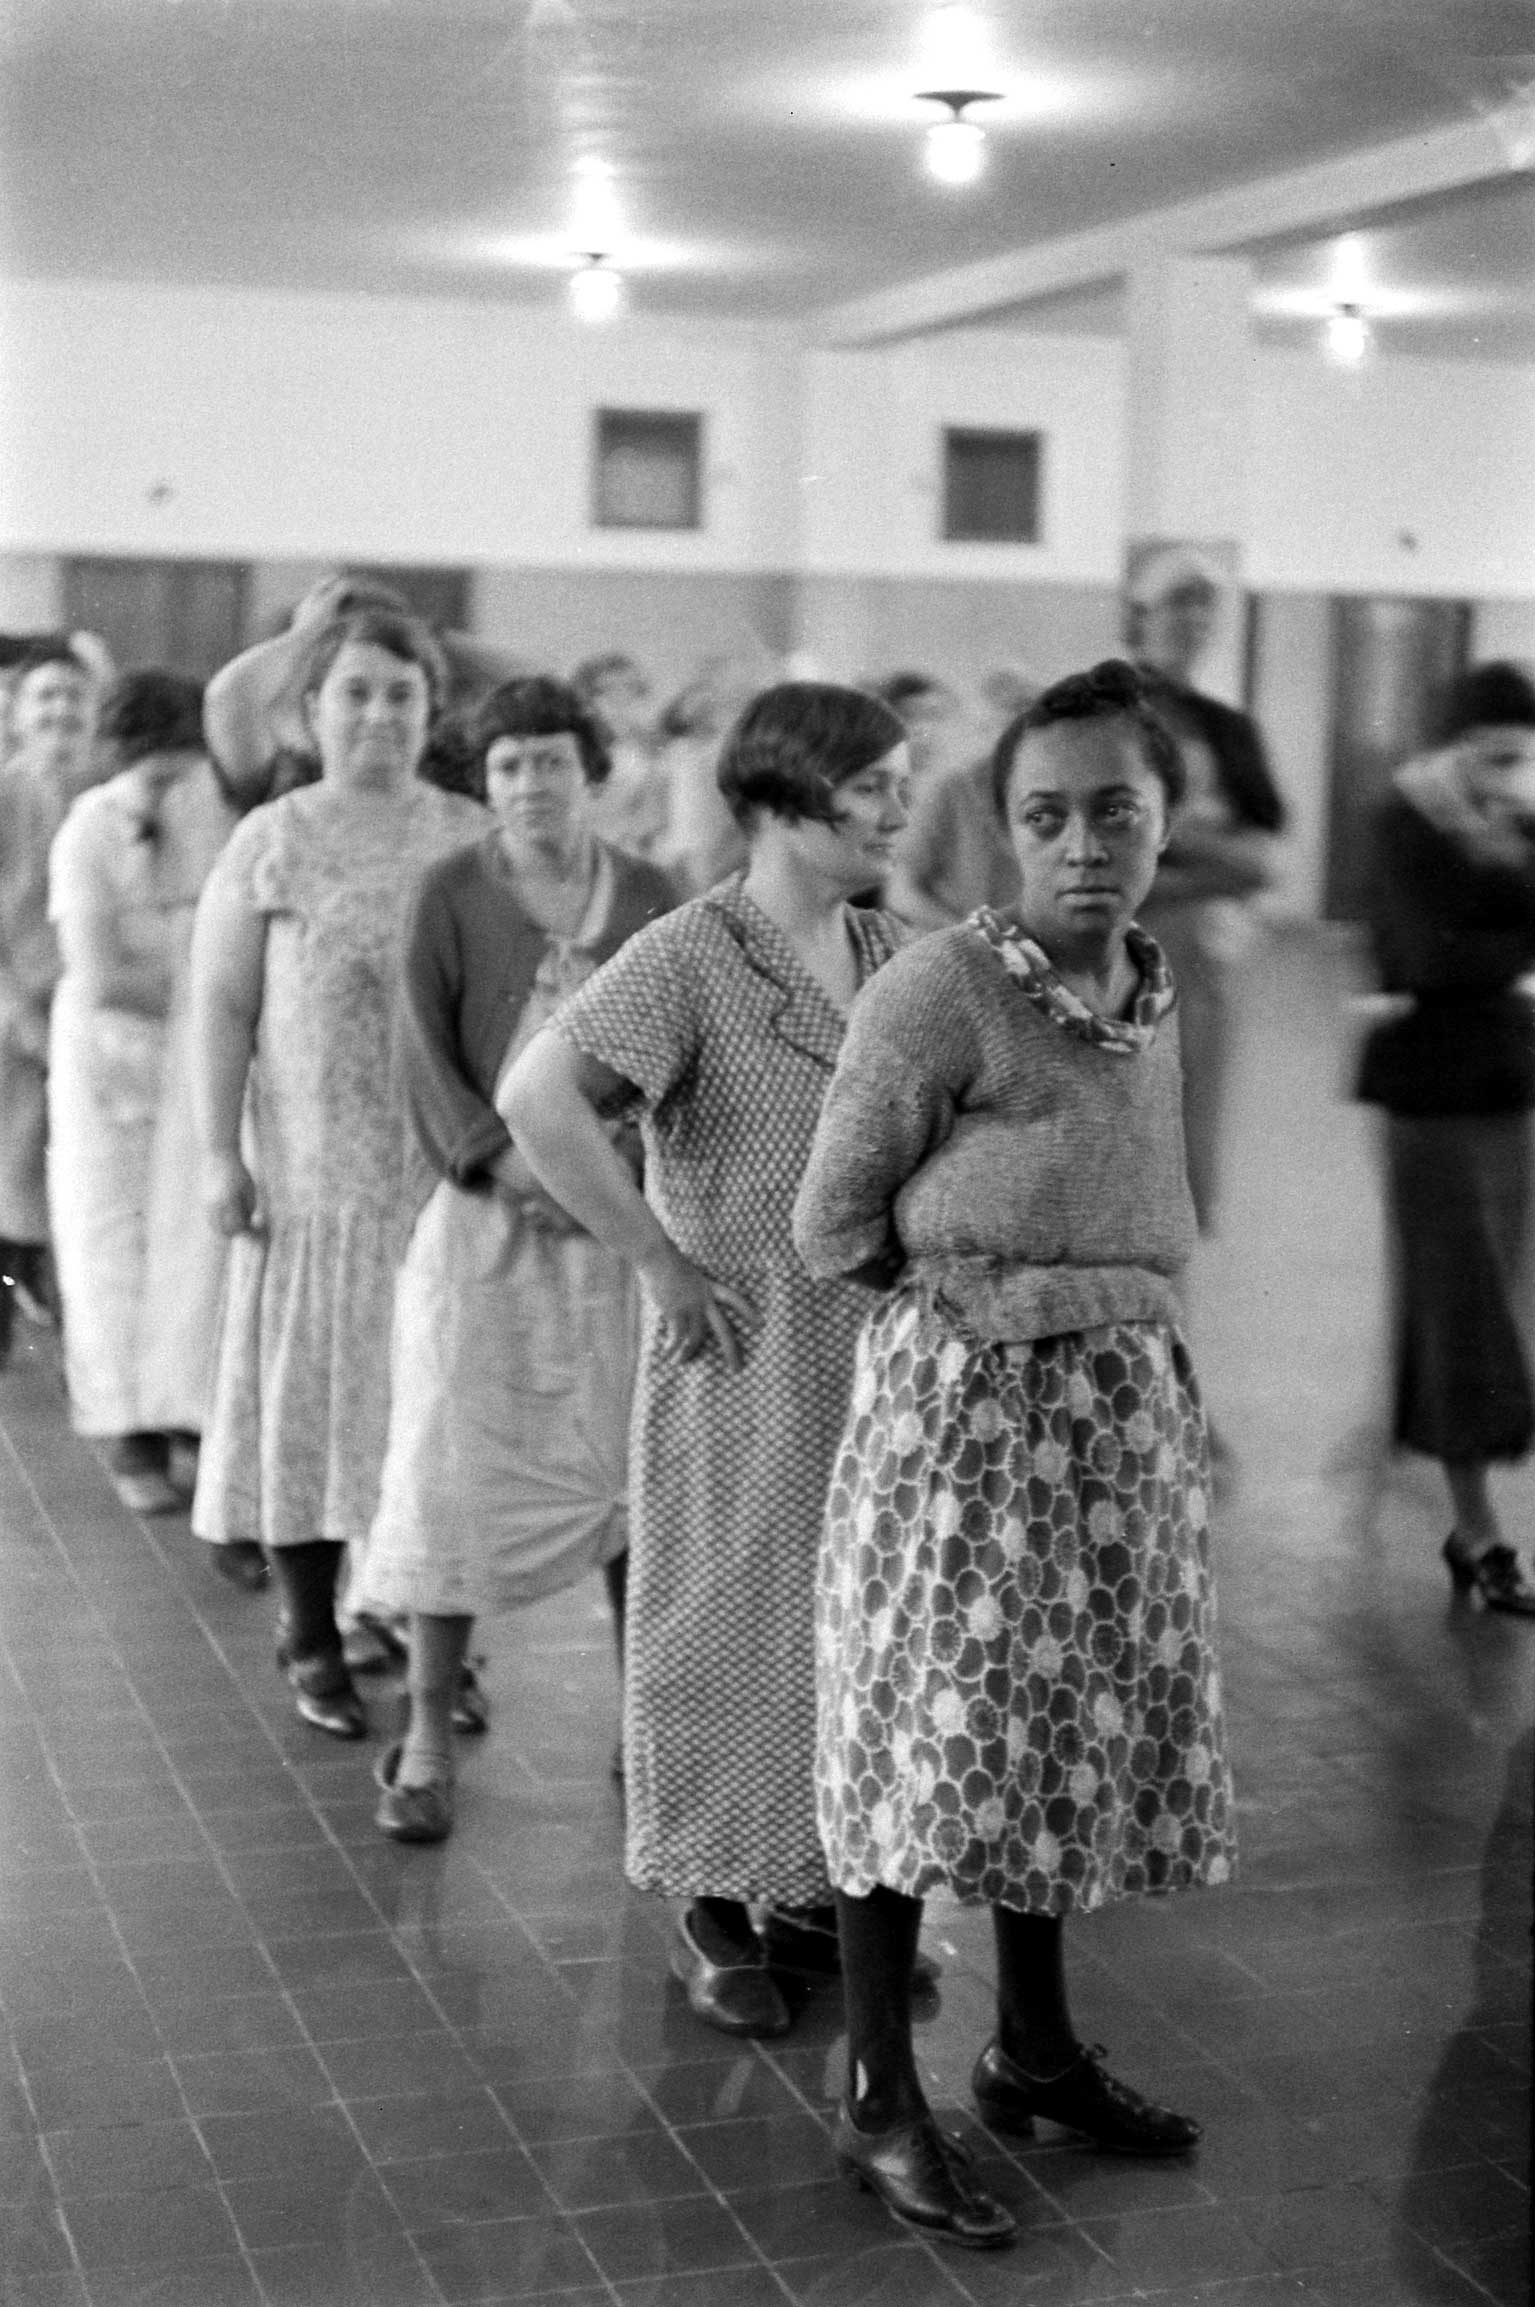 <b>Not published in LIFE.</b> Pilgrim State Hospital, Brentwood, NY, 1938.